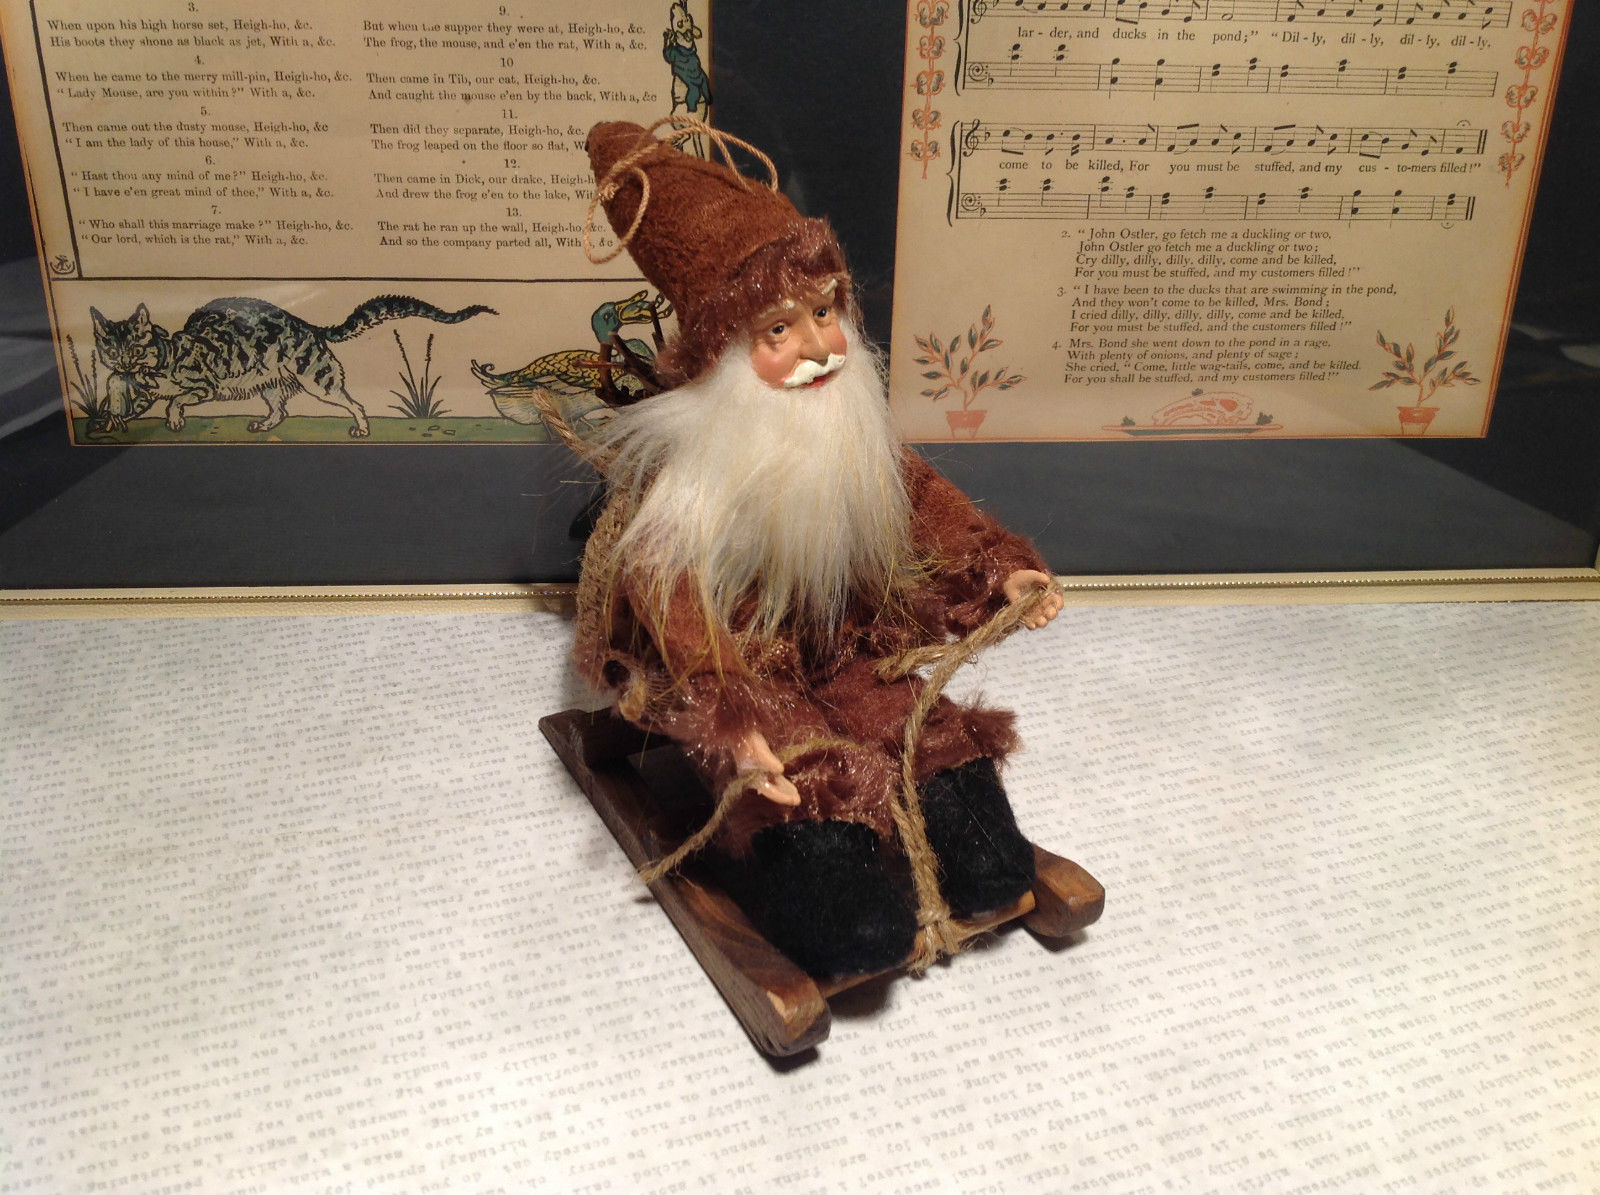 Santa with Burlap Sack on Back in Brown Wooden Sled Figurine Ornament